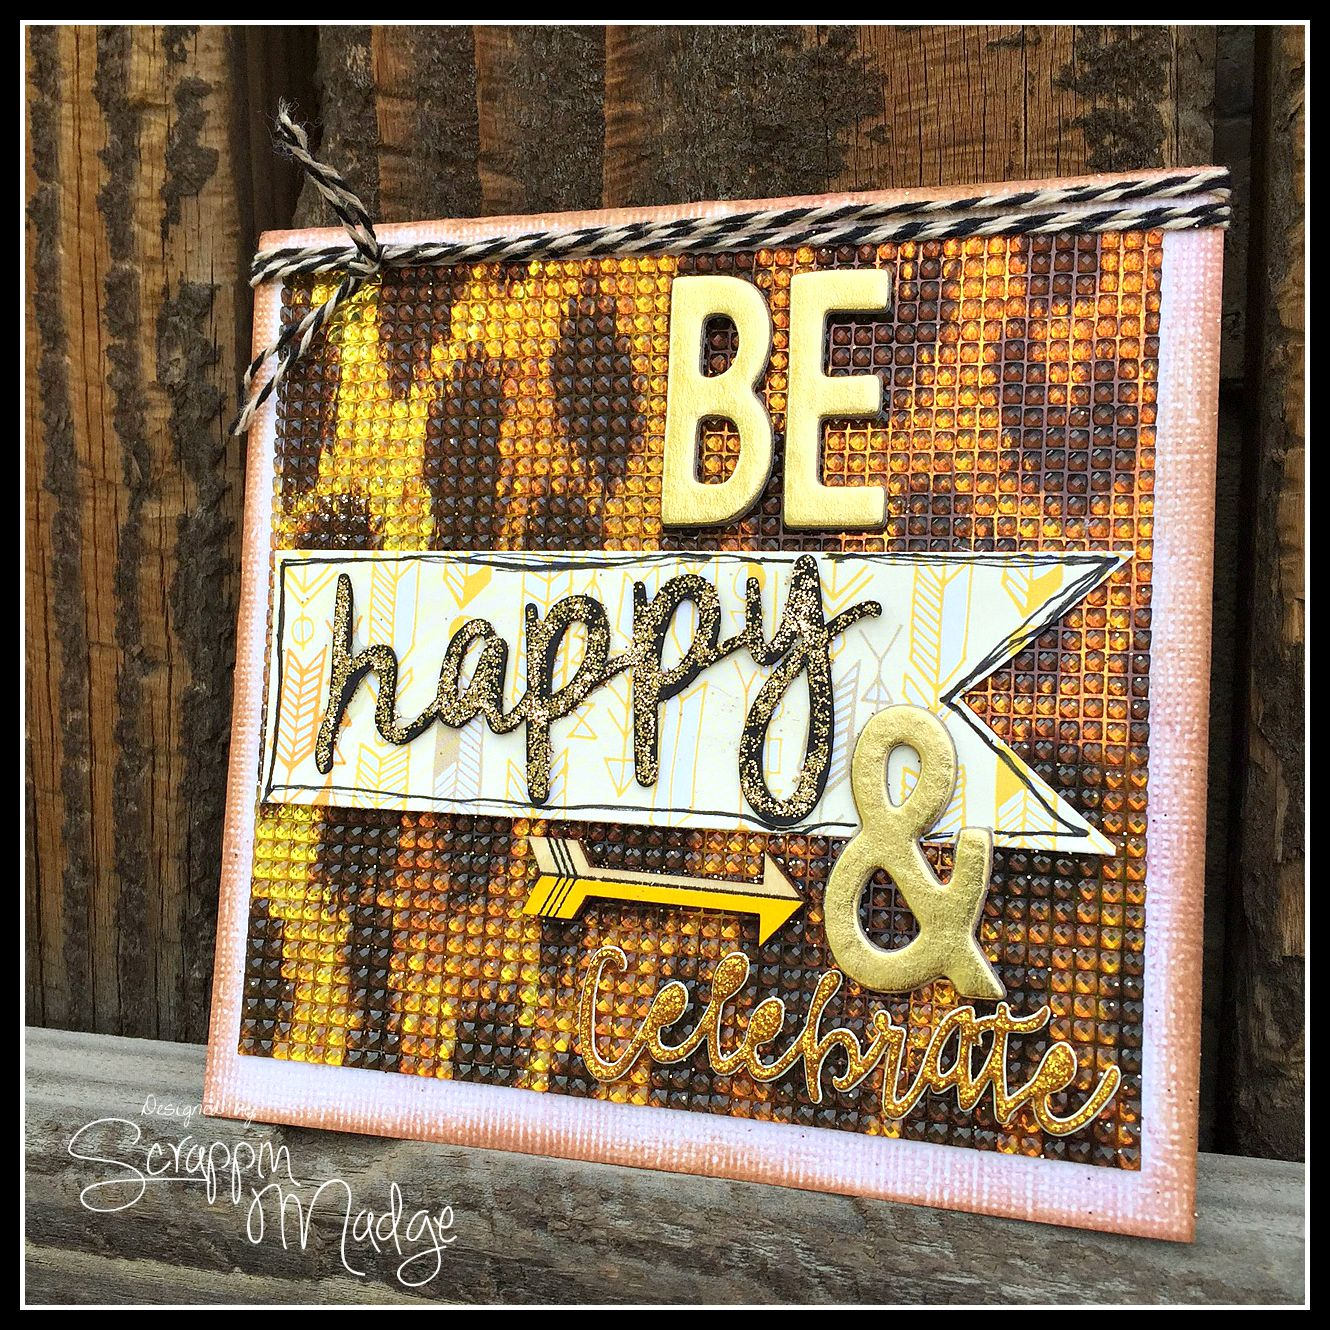 Be Happy and Celebrate